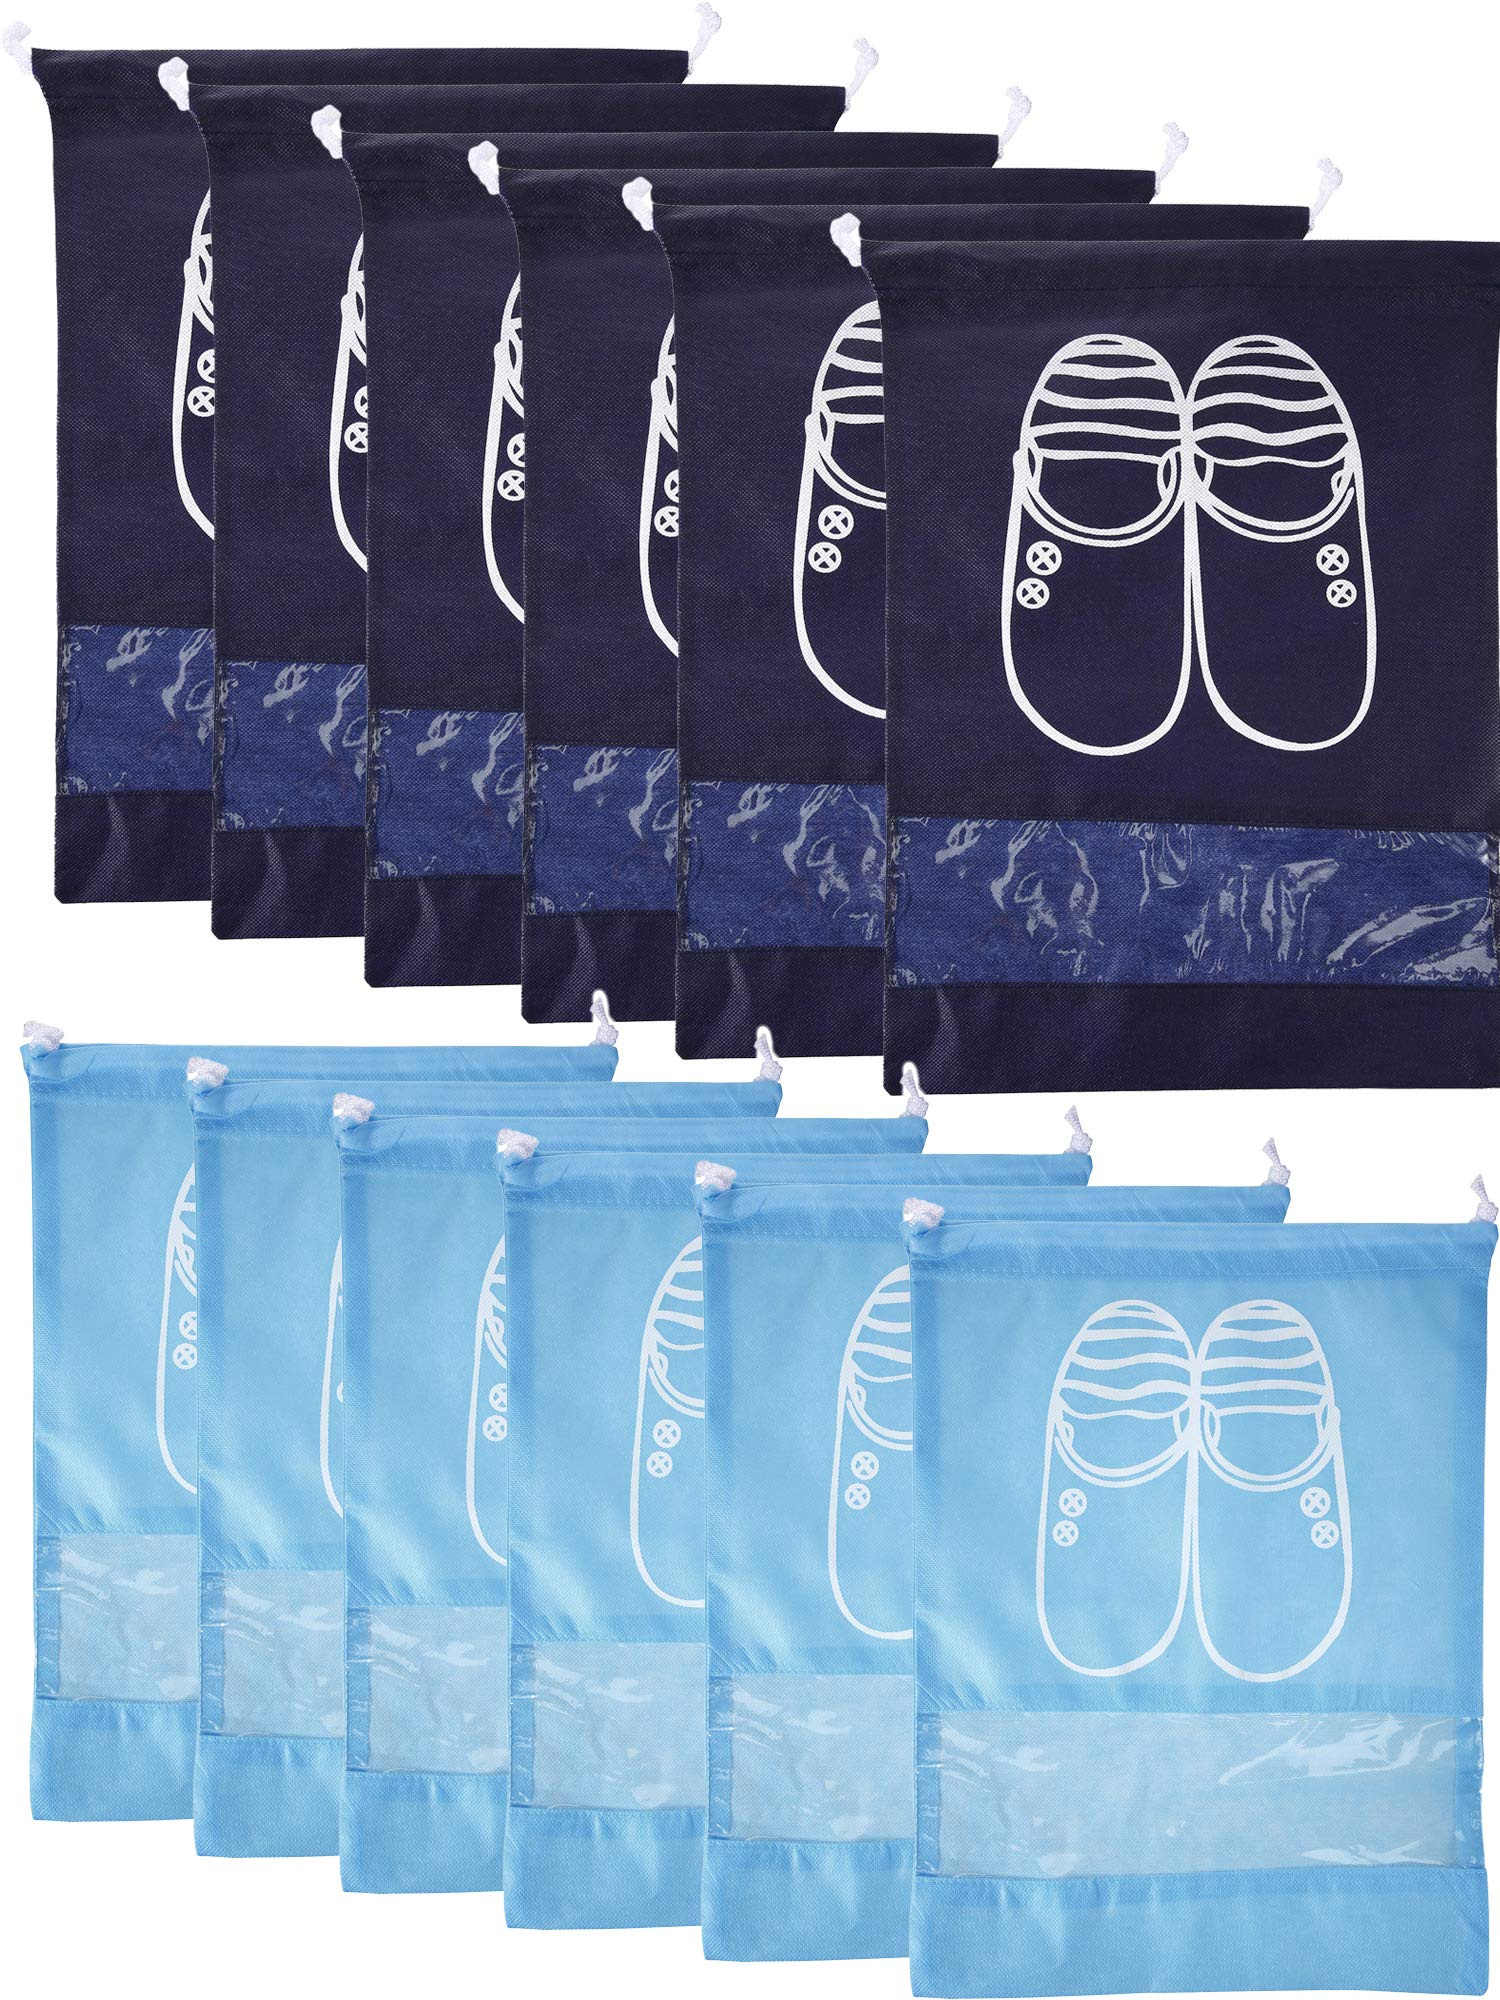 Chengu 12 Pieces 2 Sizes Shoes Bag Shoe Organizer Bag Storage Dust-proof Shoe Bags with Drawstring for Women and Men (Sky Blue, Navy Blue) by Chengu